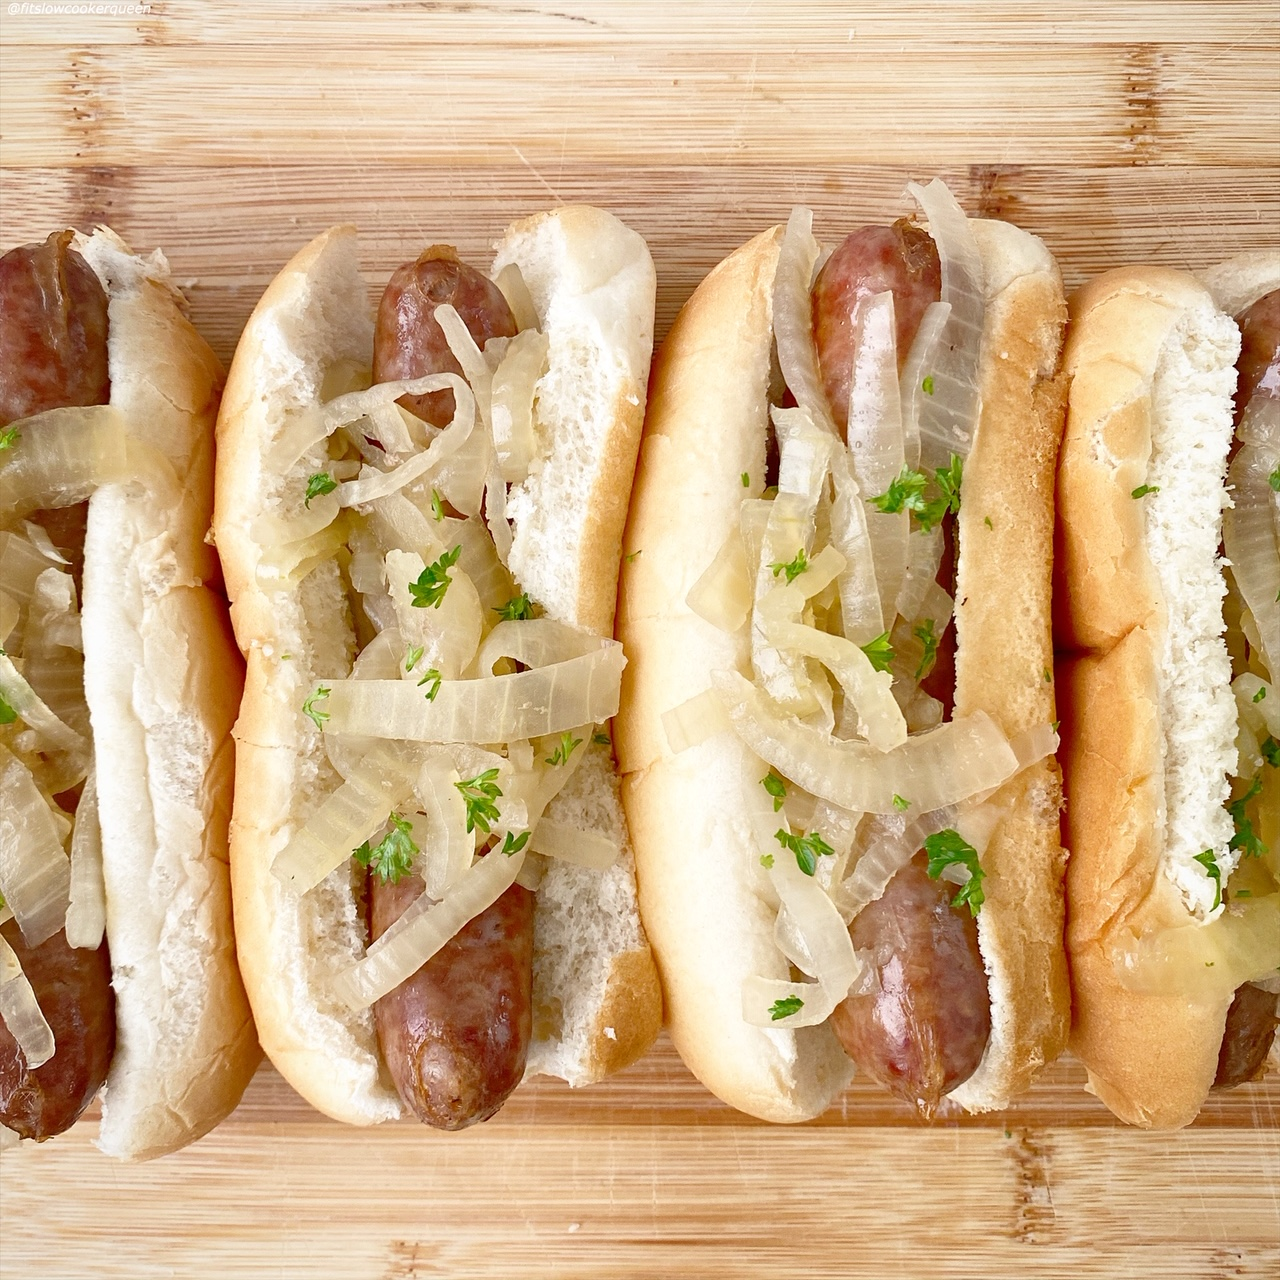 lined up cooked beer brats in a bun with onions on top